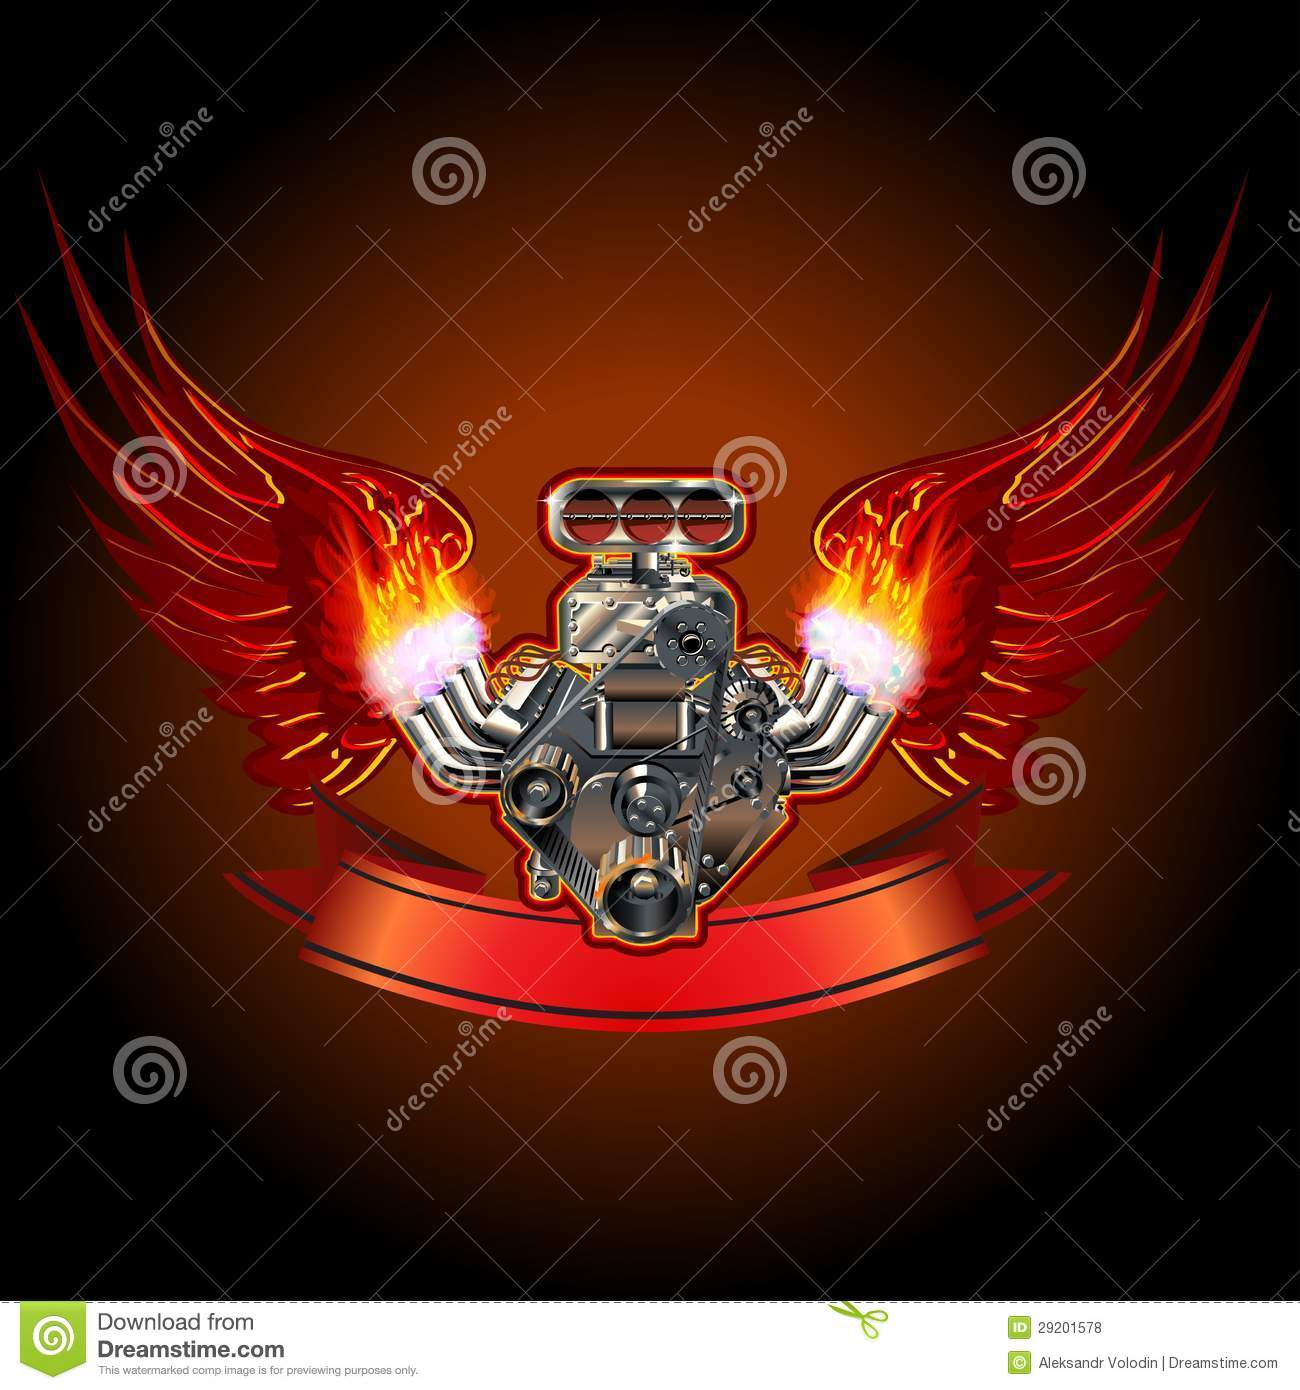 Turbo Engine With Wings Royalty Free Stock Photos Image